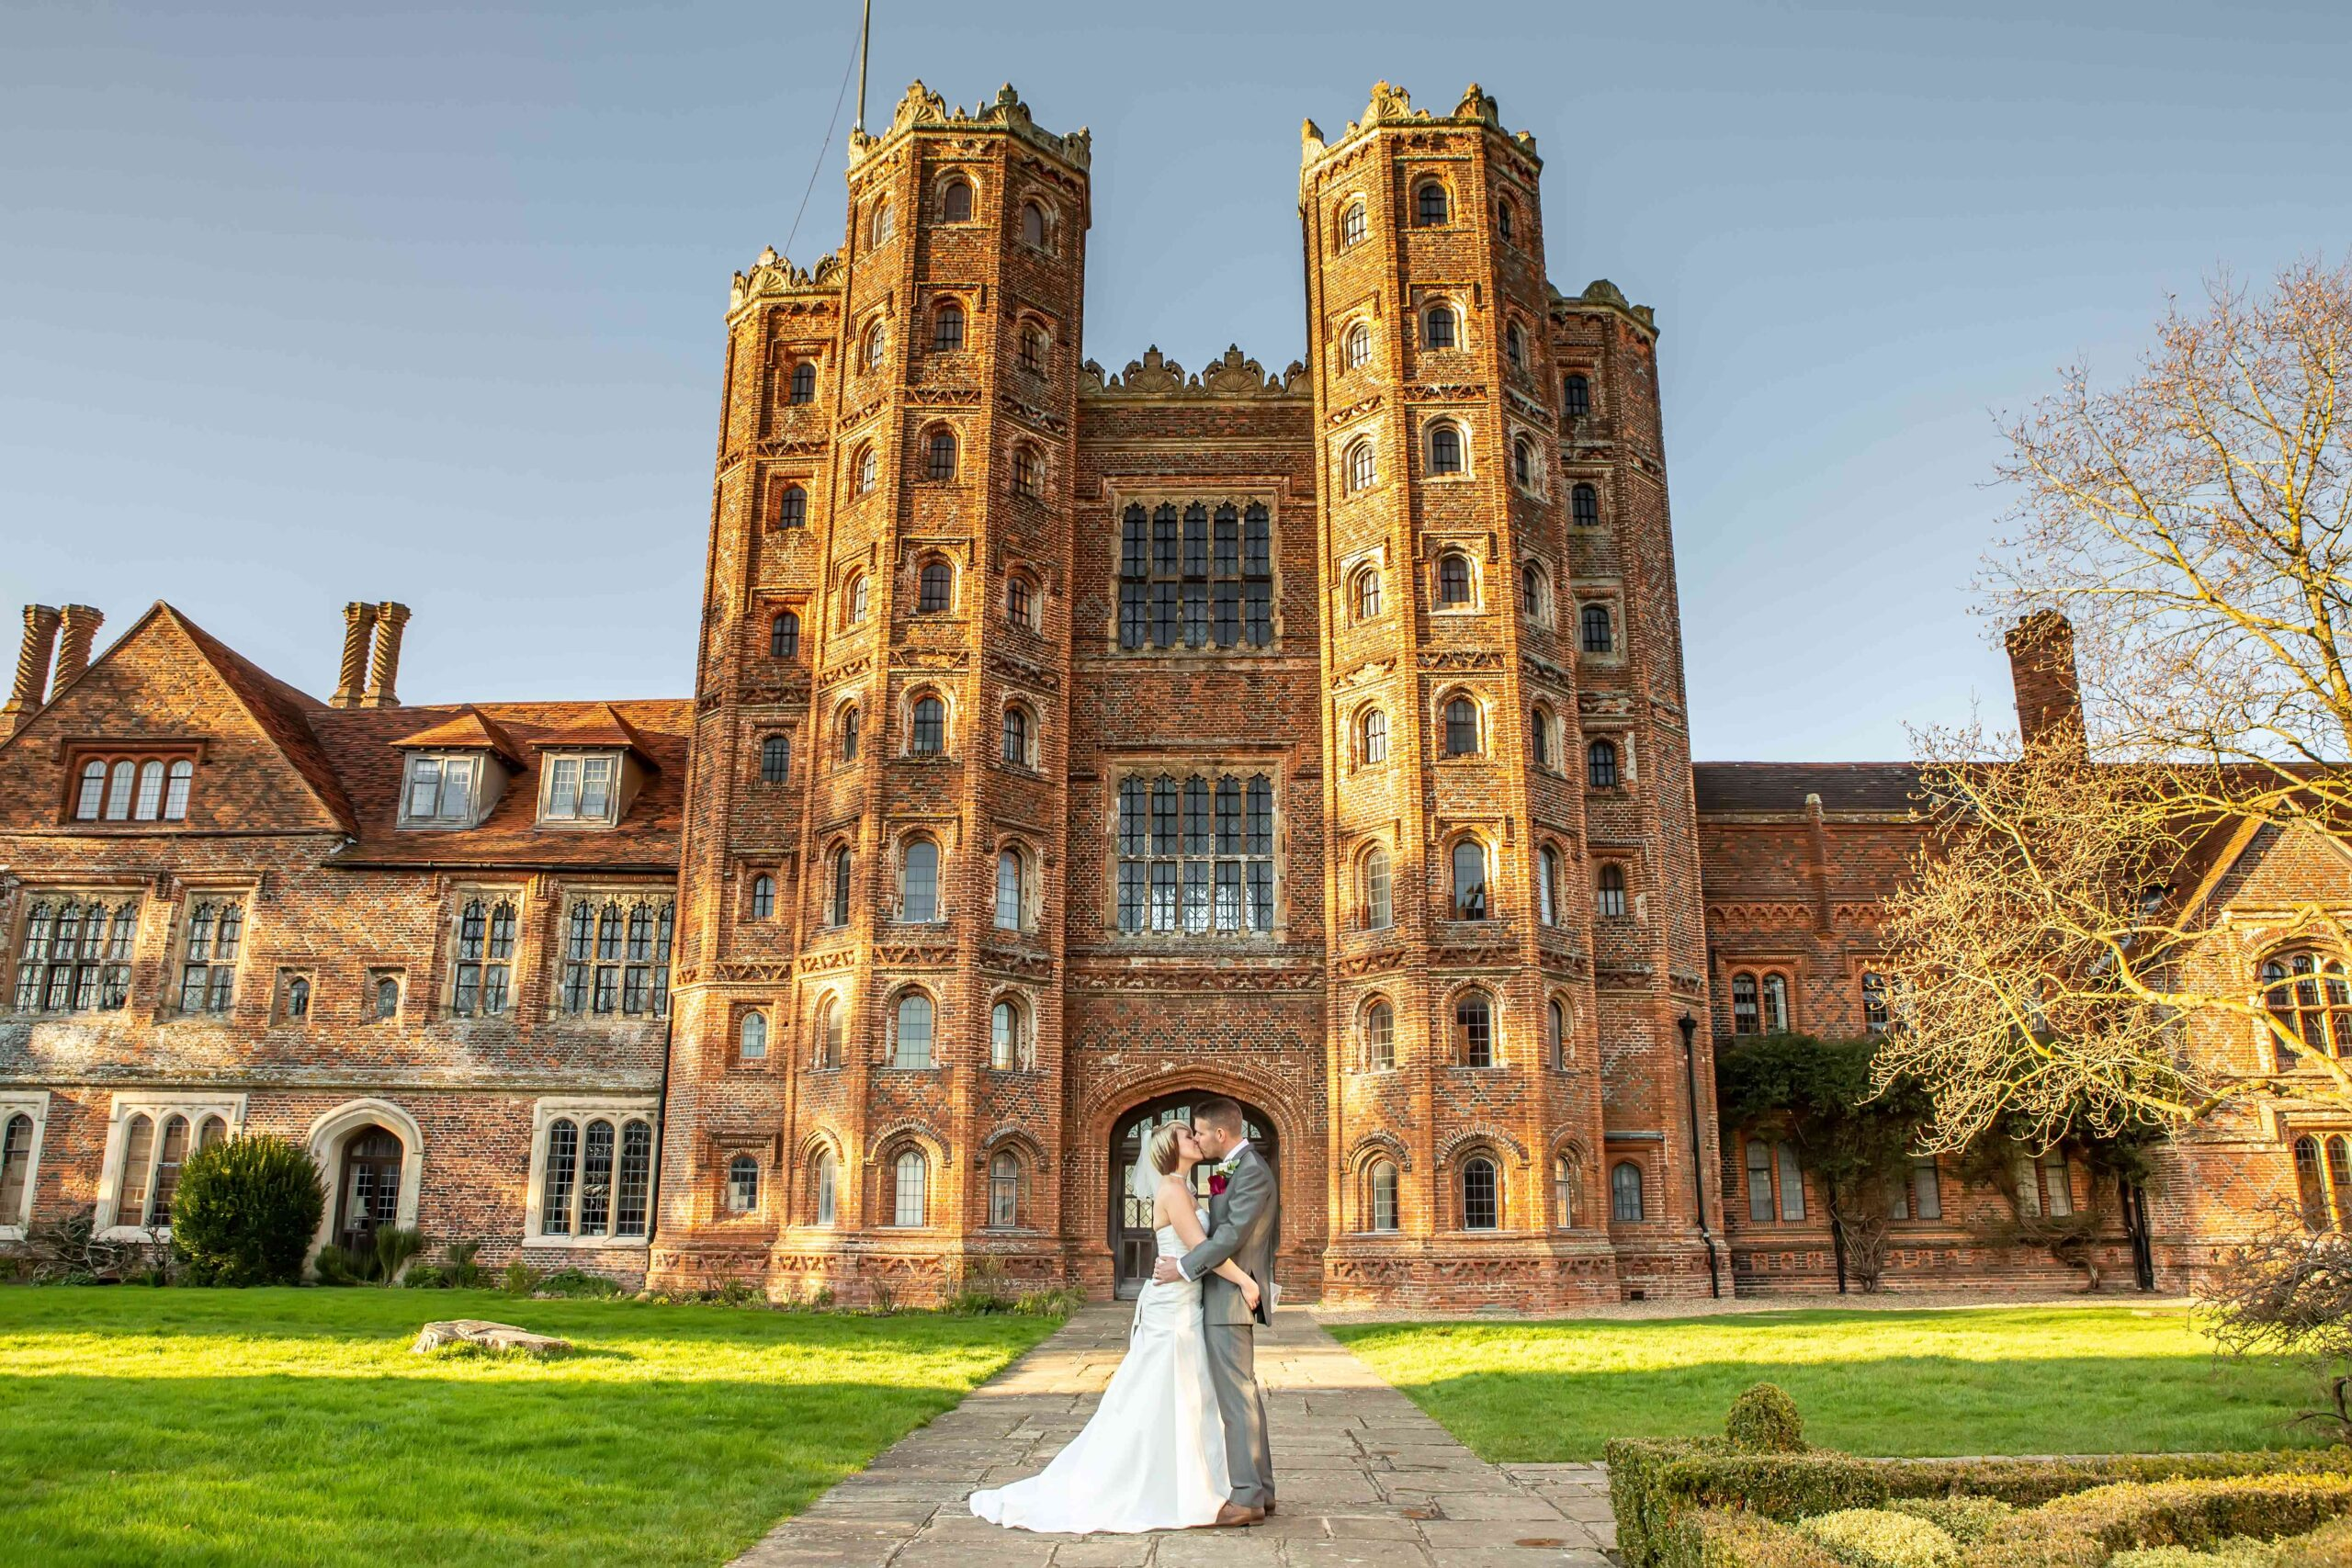 Wedding couple in front of Tudor tower